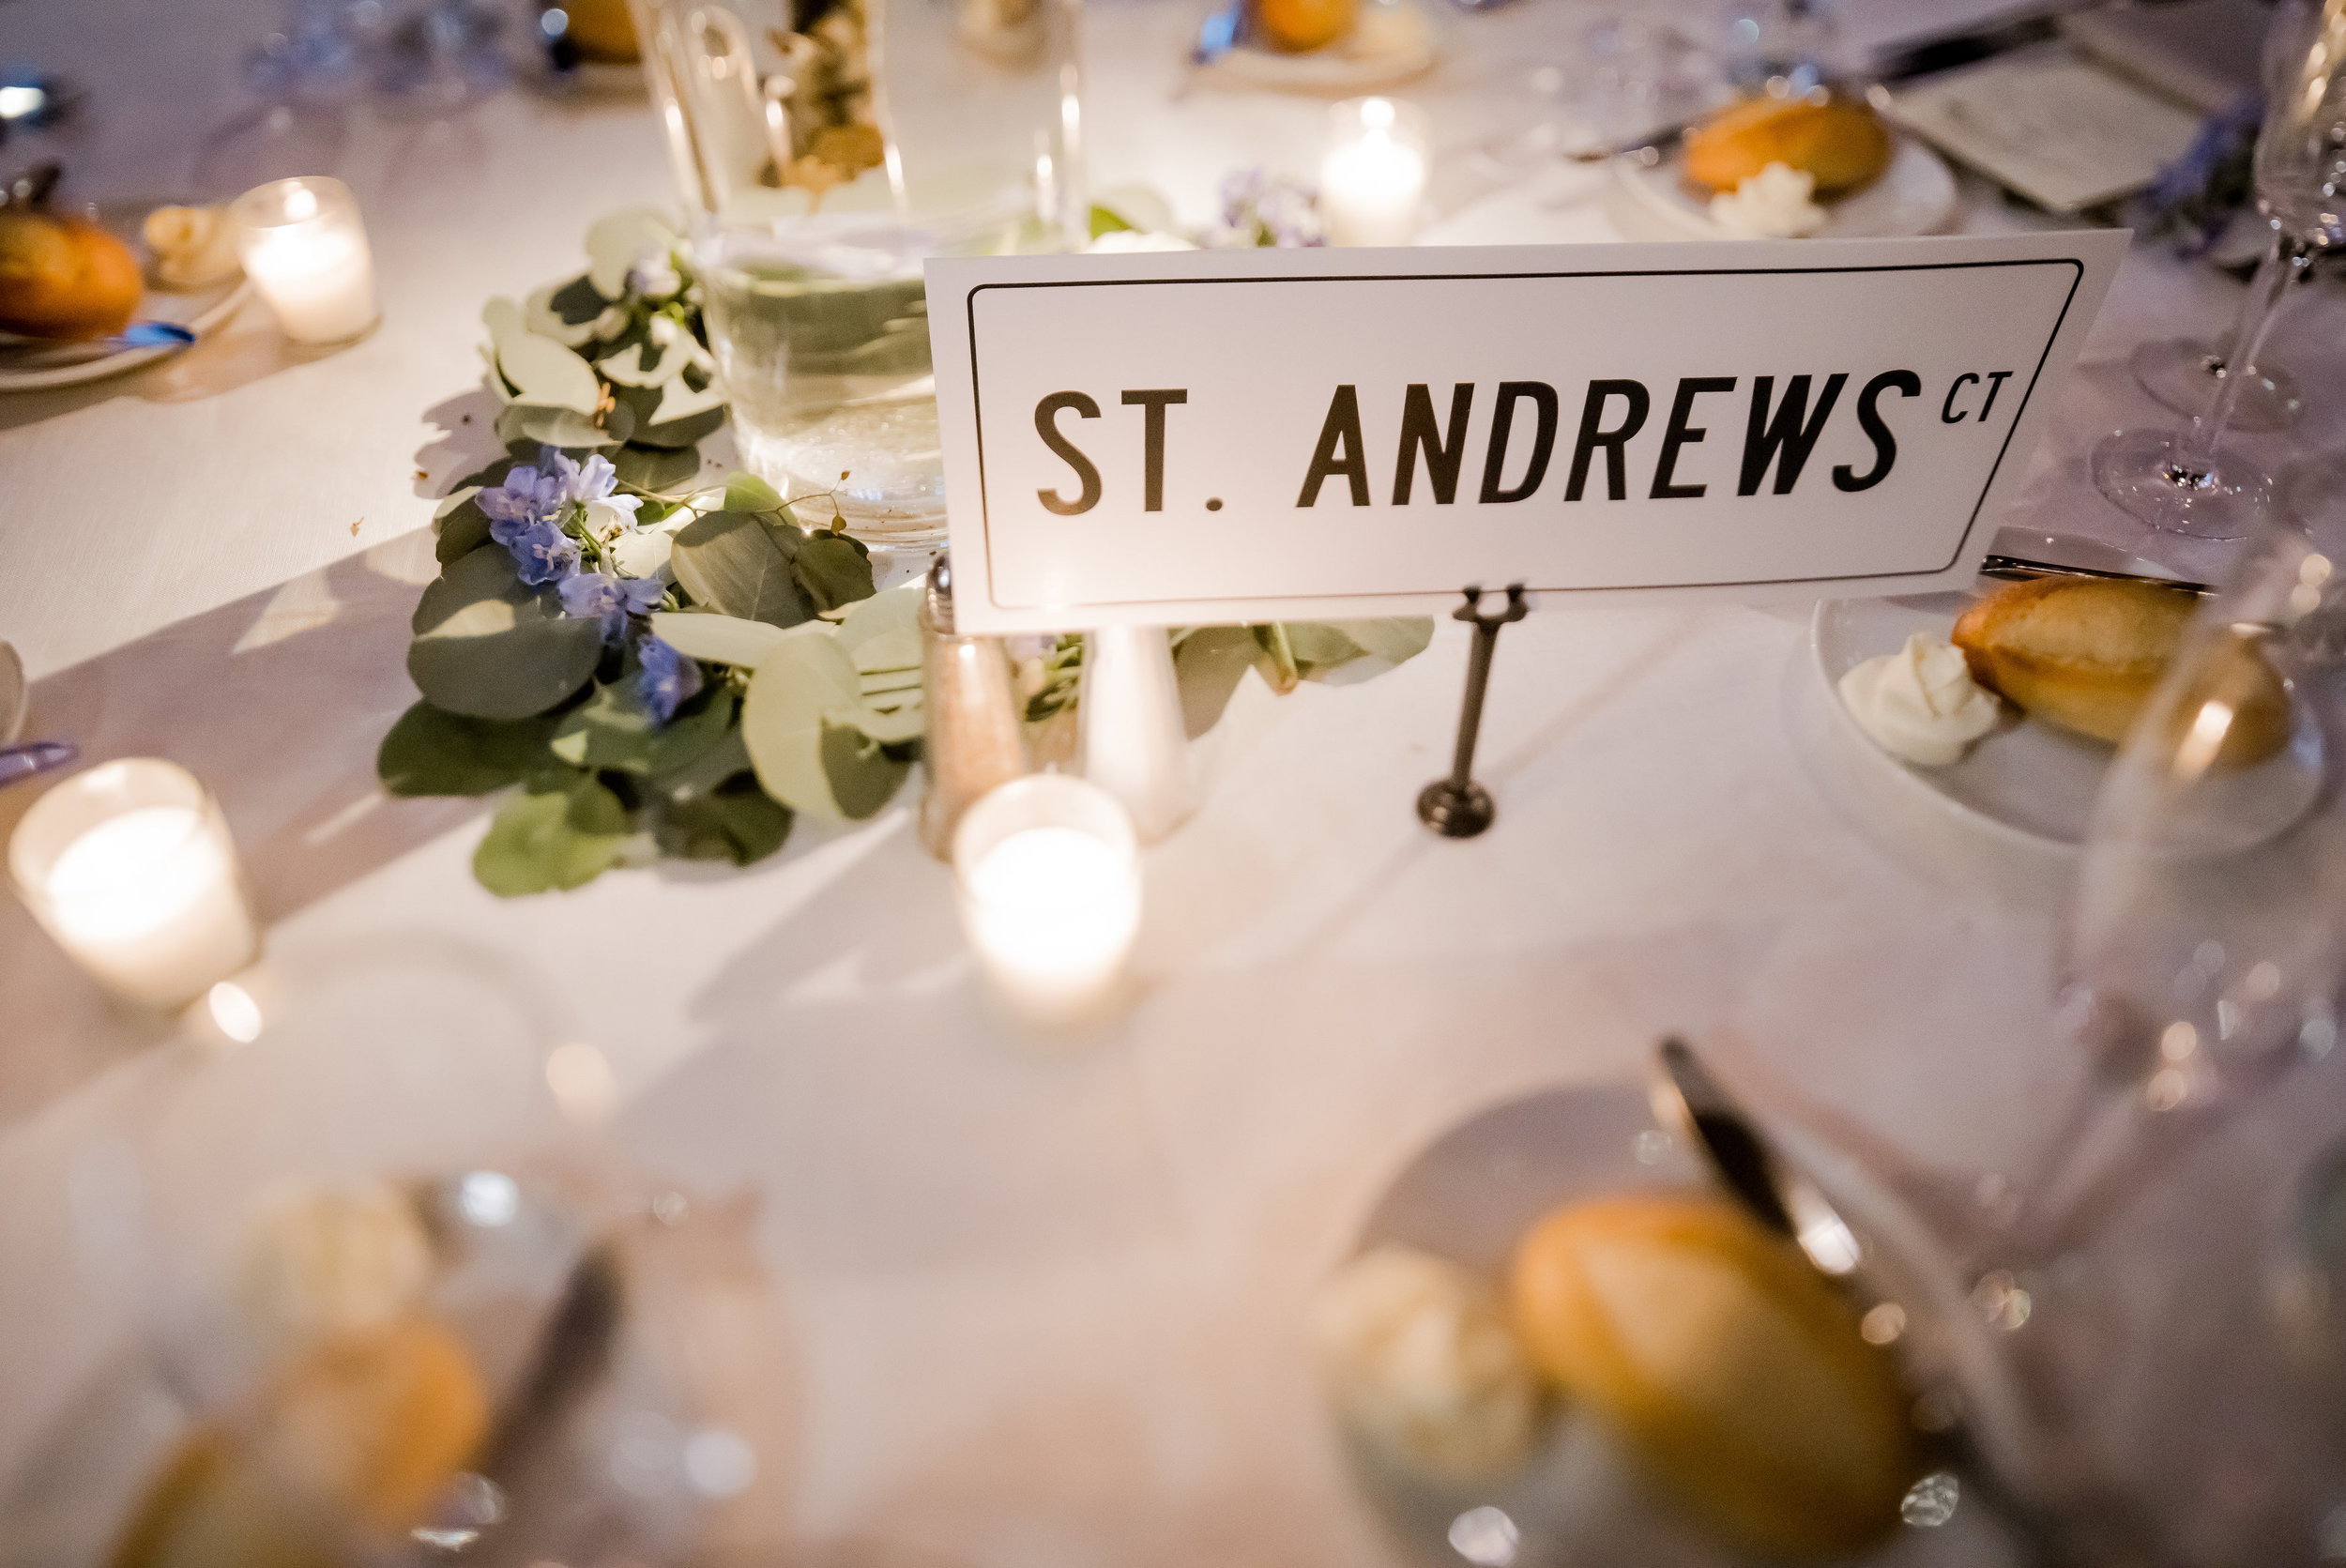 EVJ WEDDING CO 5 Way to add personal touches to your wedding 2.JPG